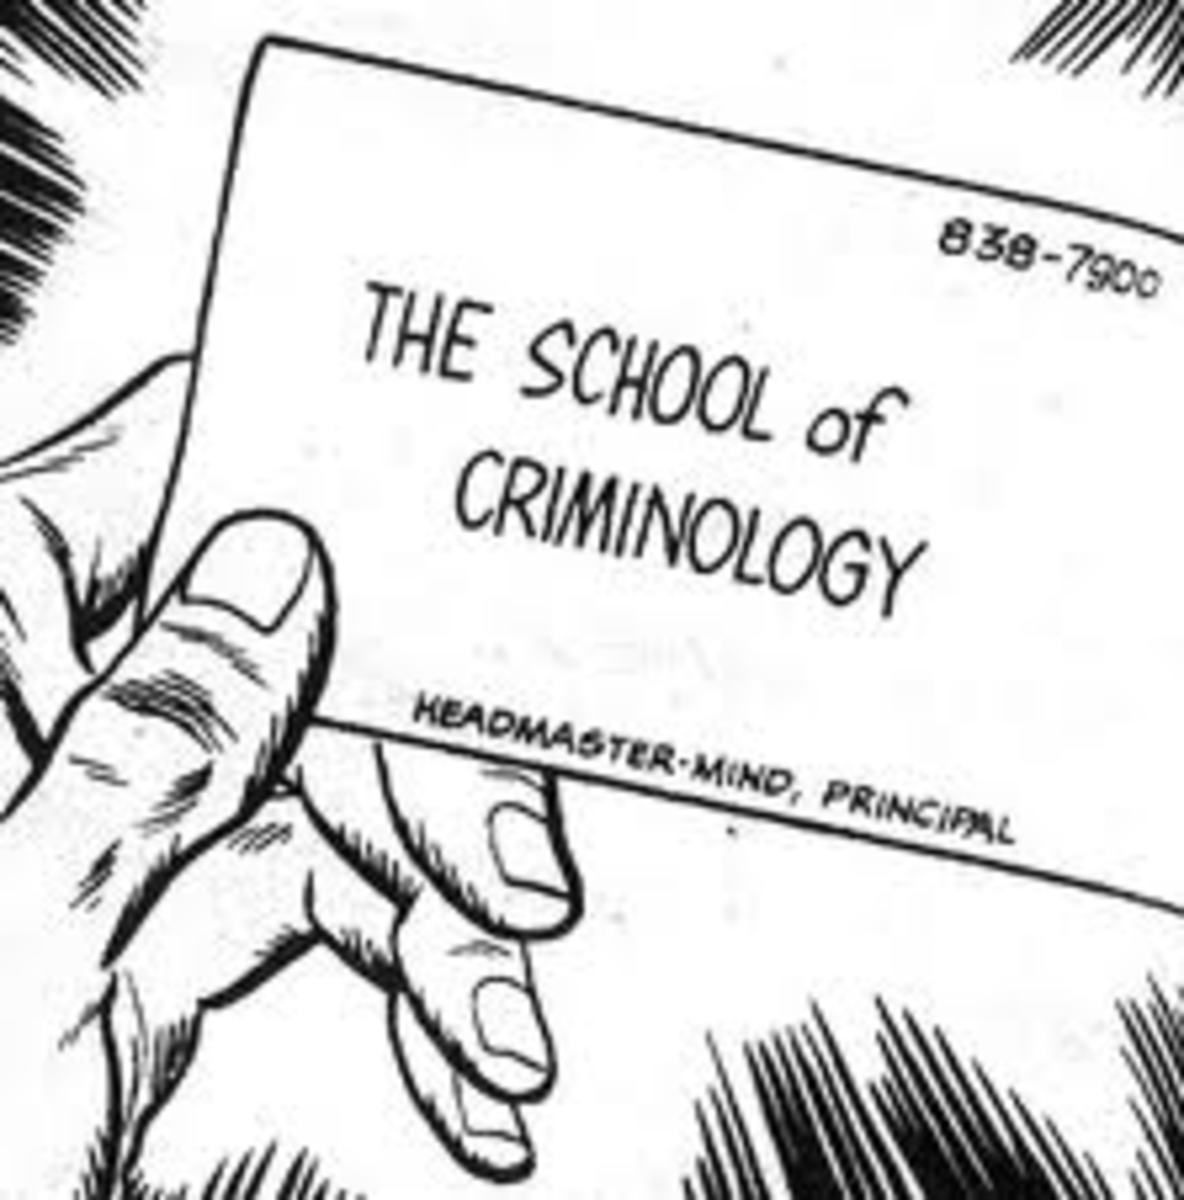 Schools Of Criminology  Owlcation. Carpet Cleaner Albuquerque Member Managed Llc. Alcohol Treatment Portland Oregon. Tax Services In Charlotte Nc. Arab Banking Corporation Pro Insurance Agency. Heavy Equipment Haulers Wasatch Vision Clinic. Navy Federal Routing Number Sent Fax Online. Software For Portfolio Management. Carpet Cleaning Richardson Tx